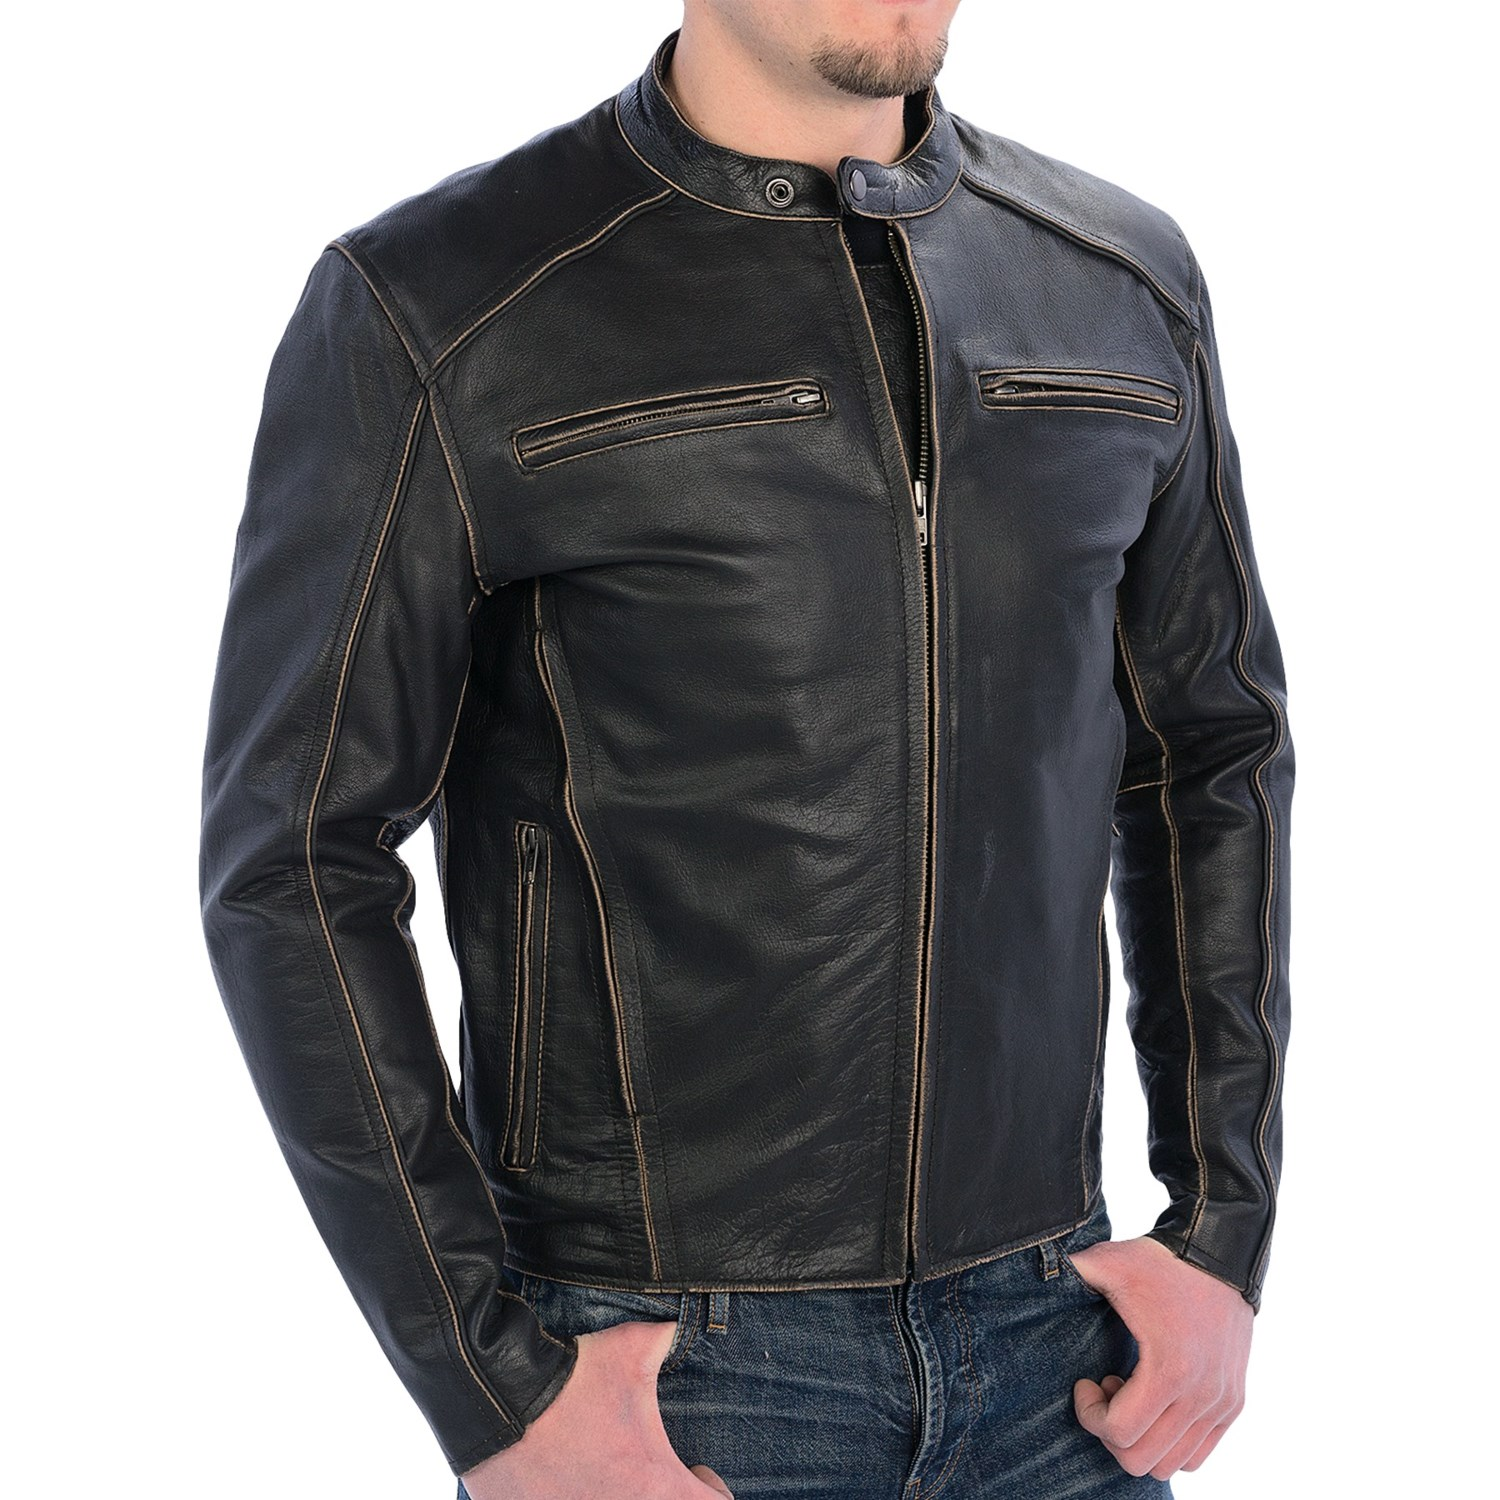 Mens Motorcycle Jackets, Biker Textile, Mesh Jackets, Heated Biker Gear. Shop exeezipcoolgetsiu9tq.cf the #1 Online Motorcycle Store, Over 3 Million Customers Since